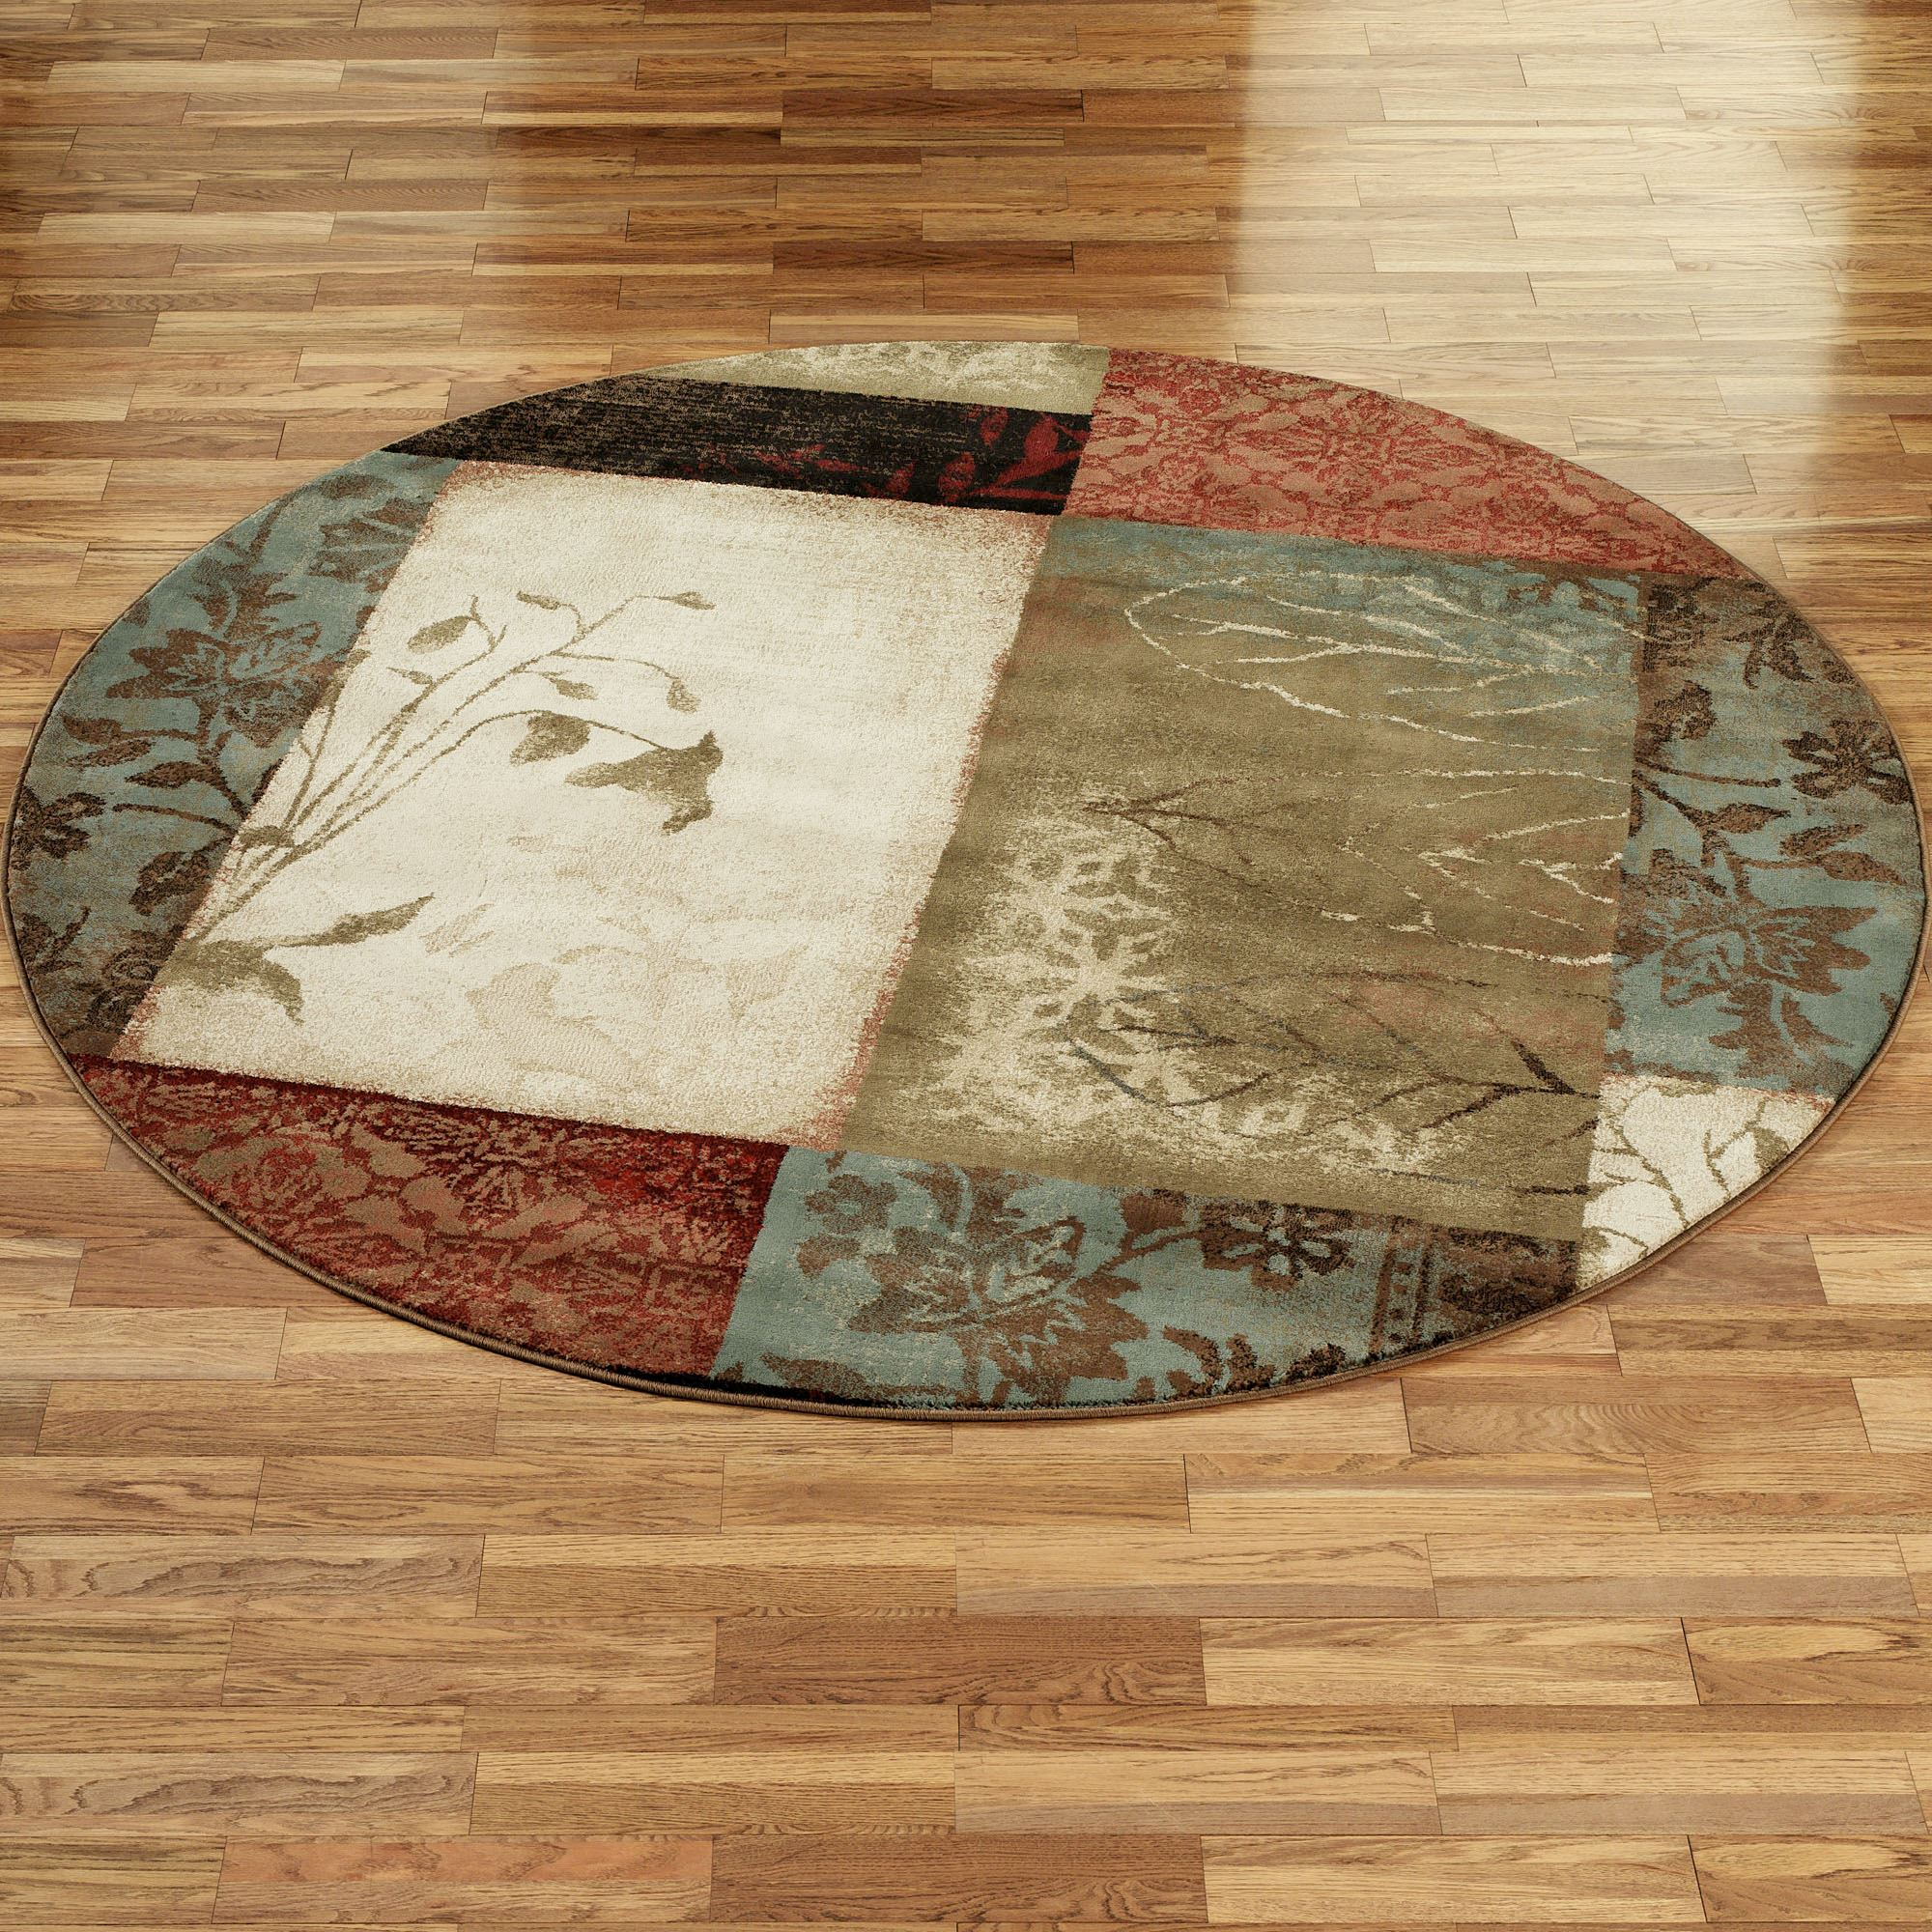 Impression Leaf Round Area Rugs